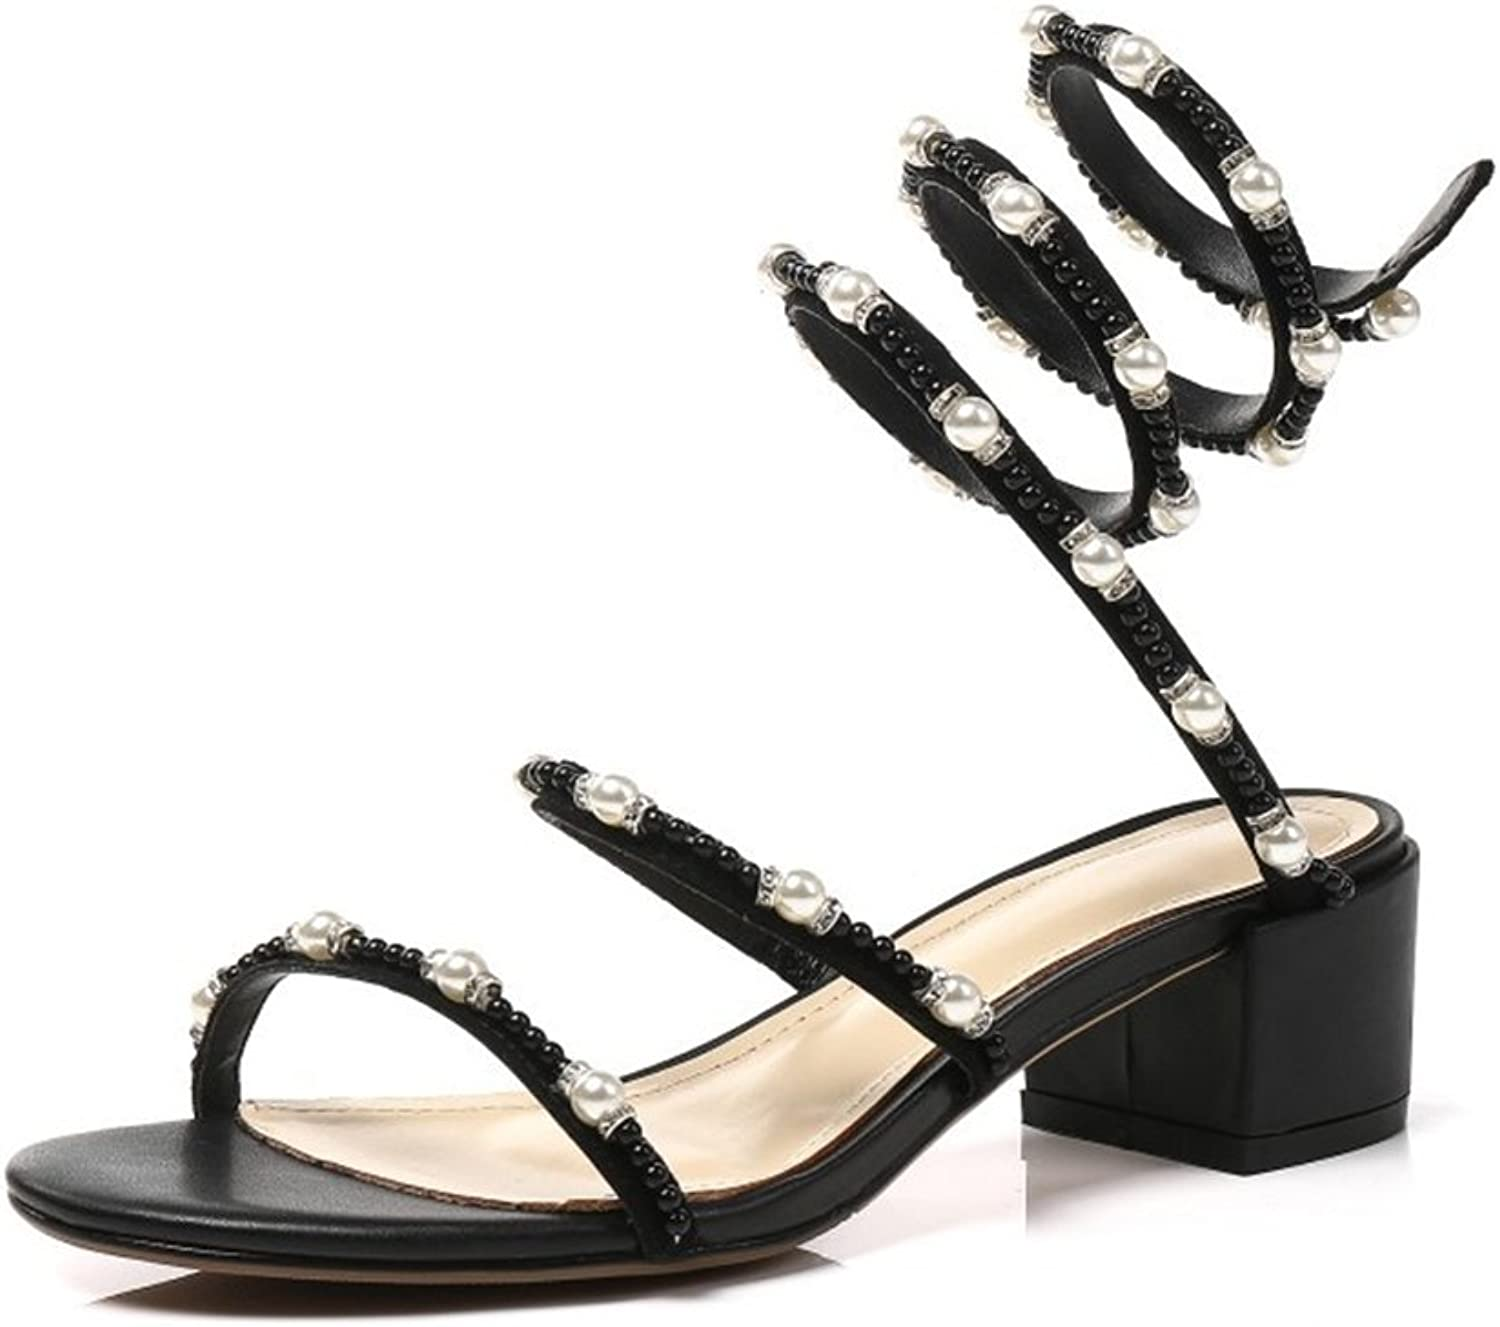 Jiang Womens's shoes PU Summer New Sandal Open Toe Rough Heel Beaded Ladies shoes for Party Outdoor Black Apricot Sandals